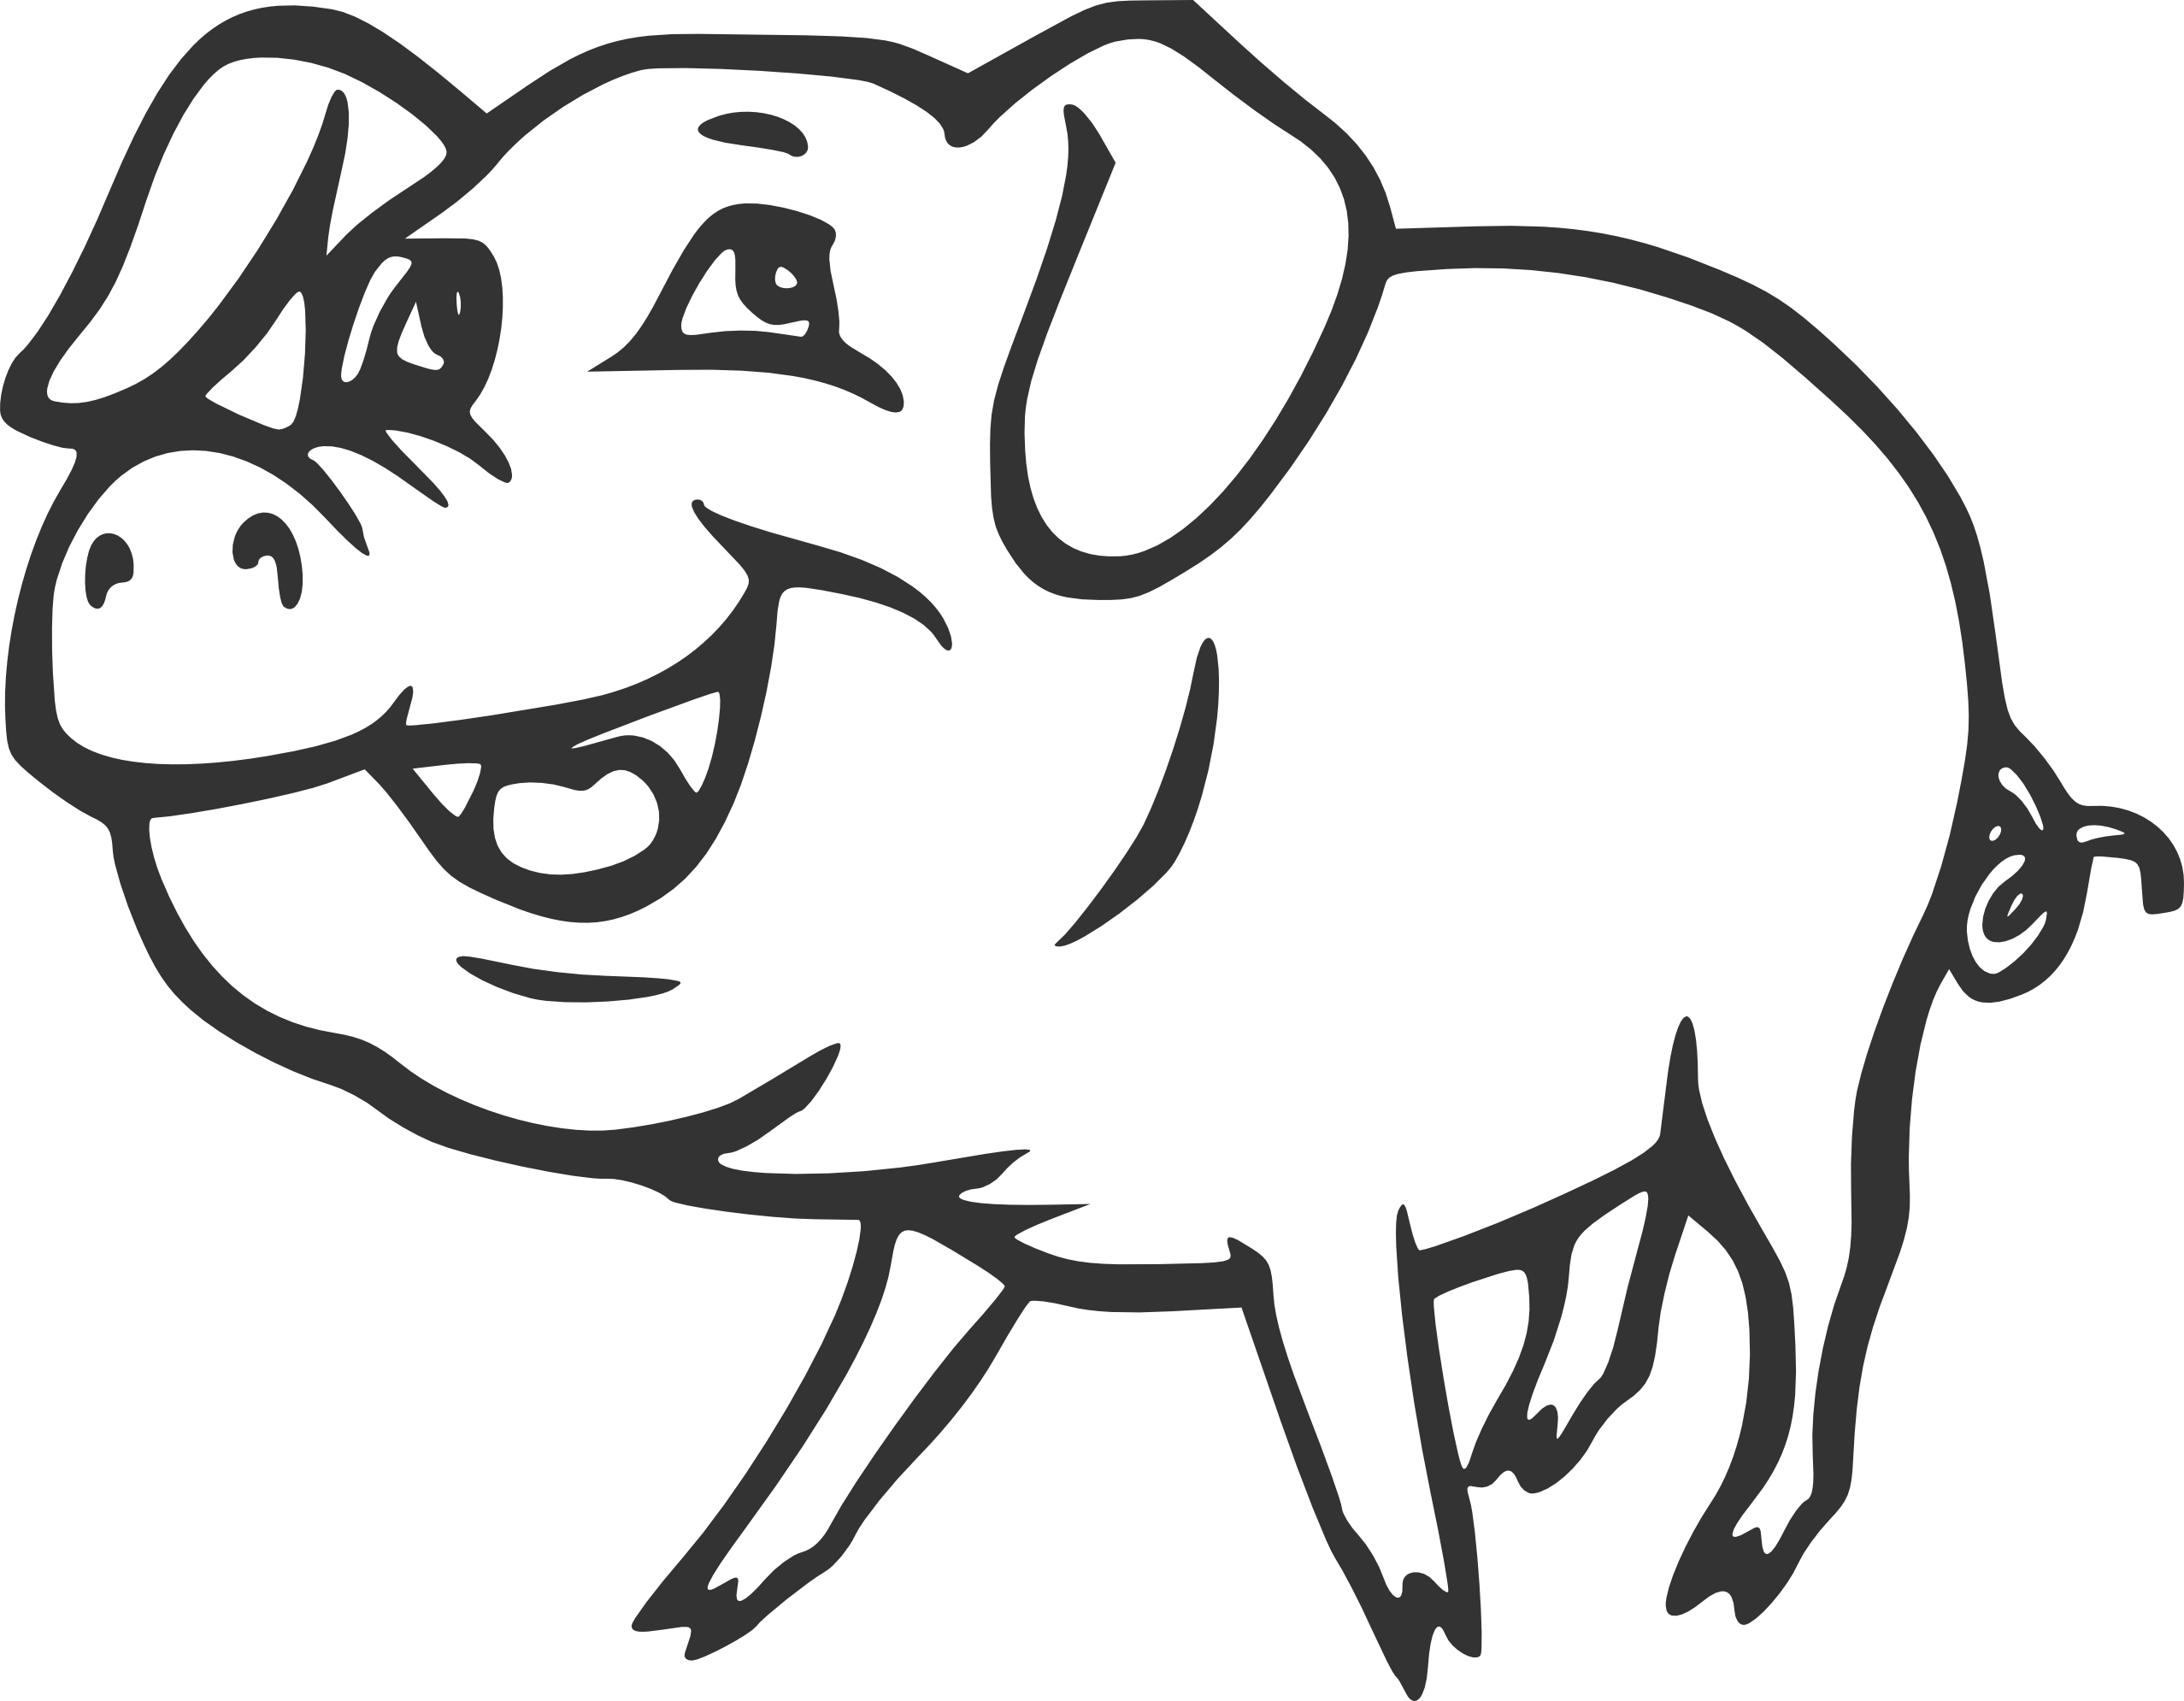 Pig Clipart Black And White Smiling Pig Black White Line Art Christmas